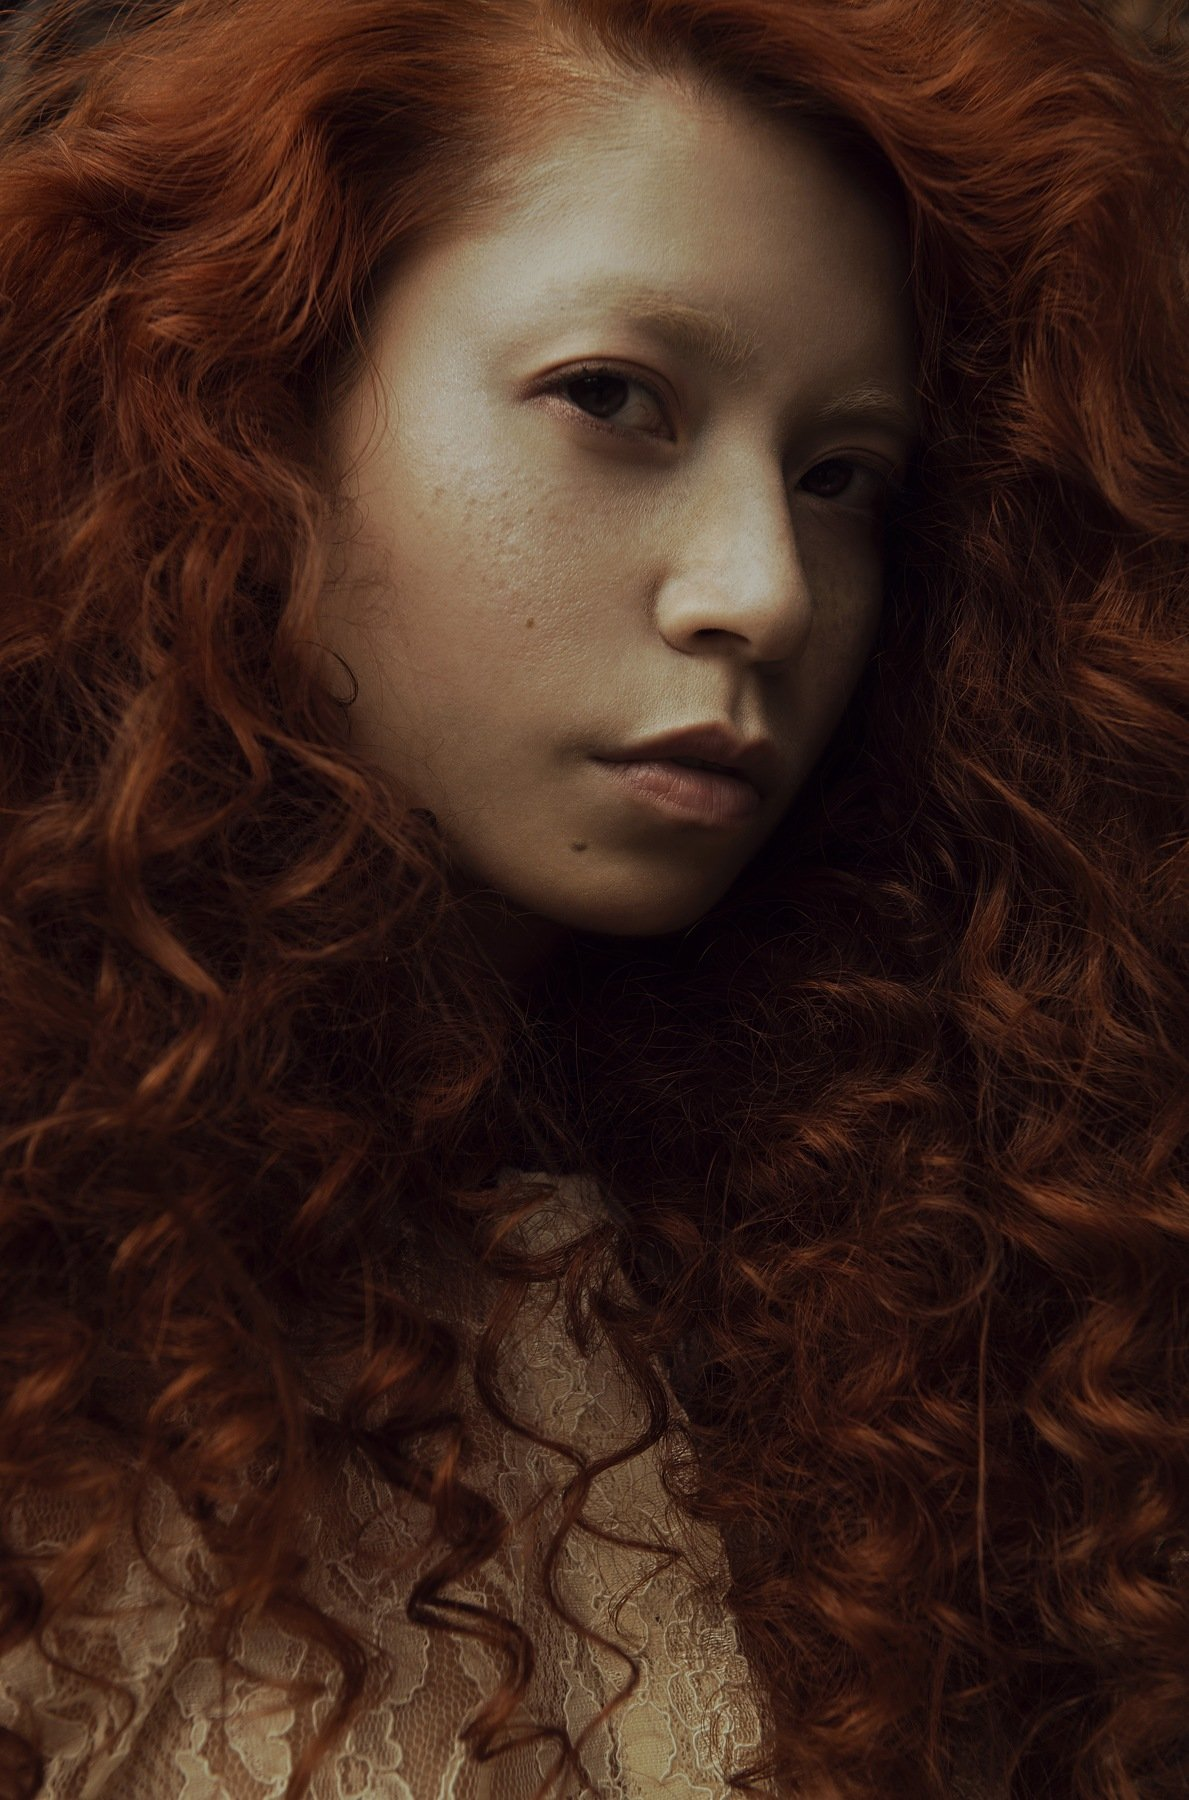 carolinemadison, portrait, beauty, redhair, redhead, portraiture, curlyhair,  asian, emotion, longhair,, Caroline Madison